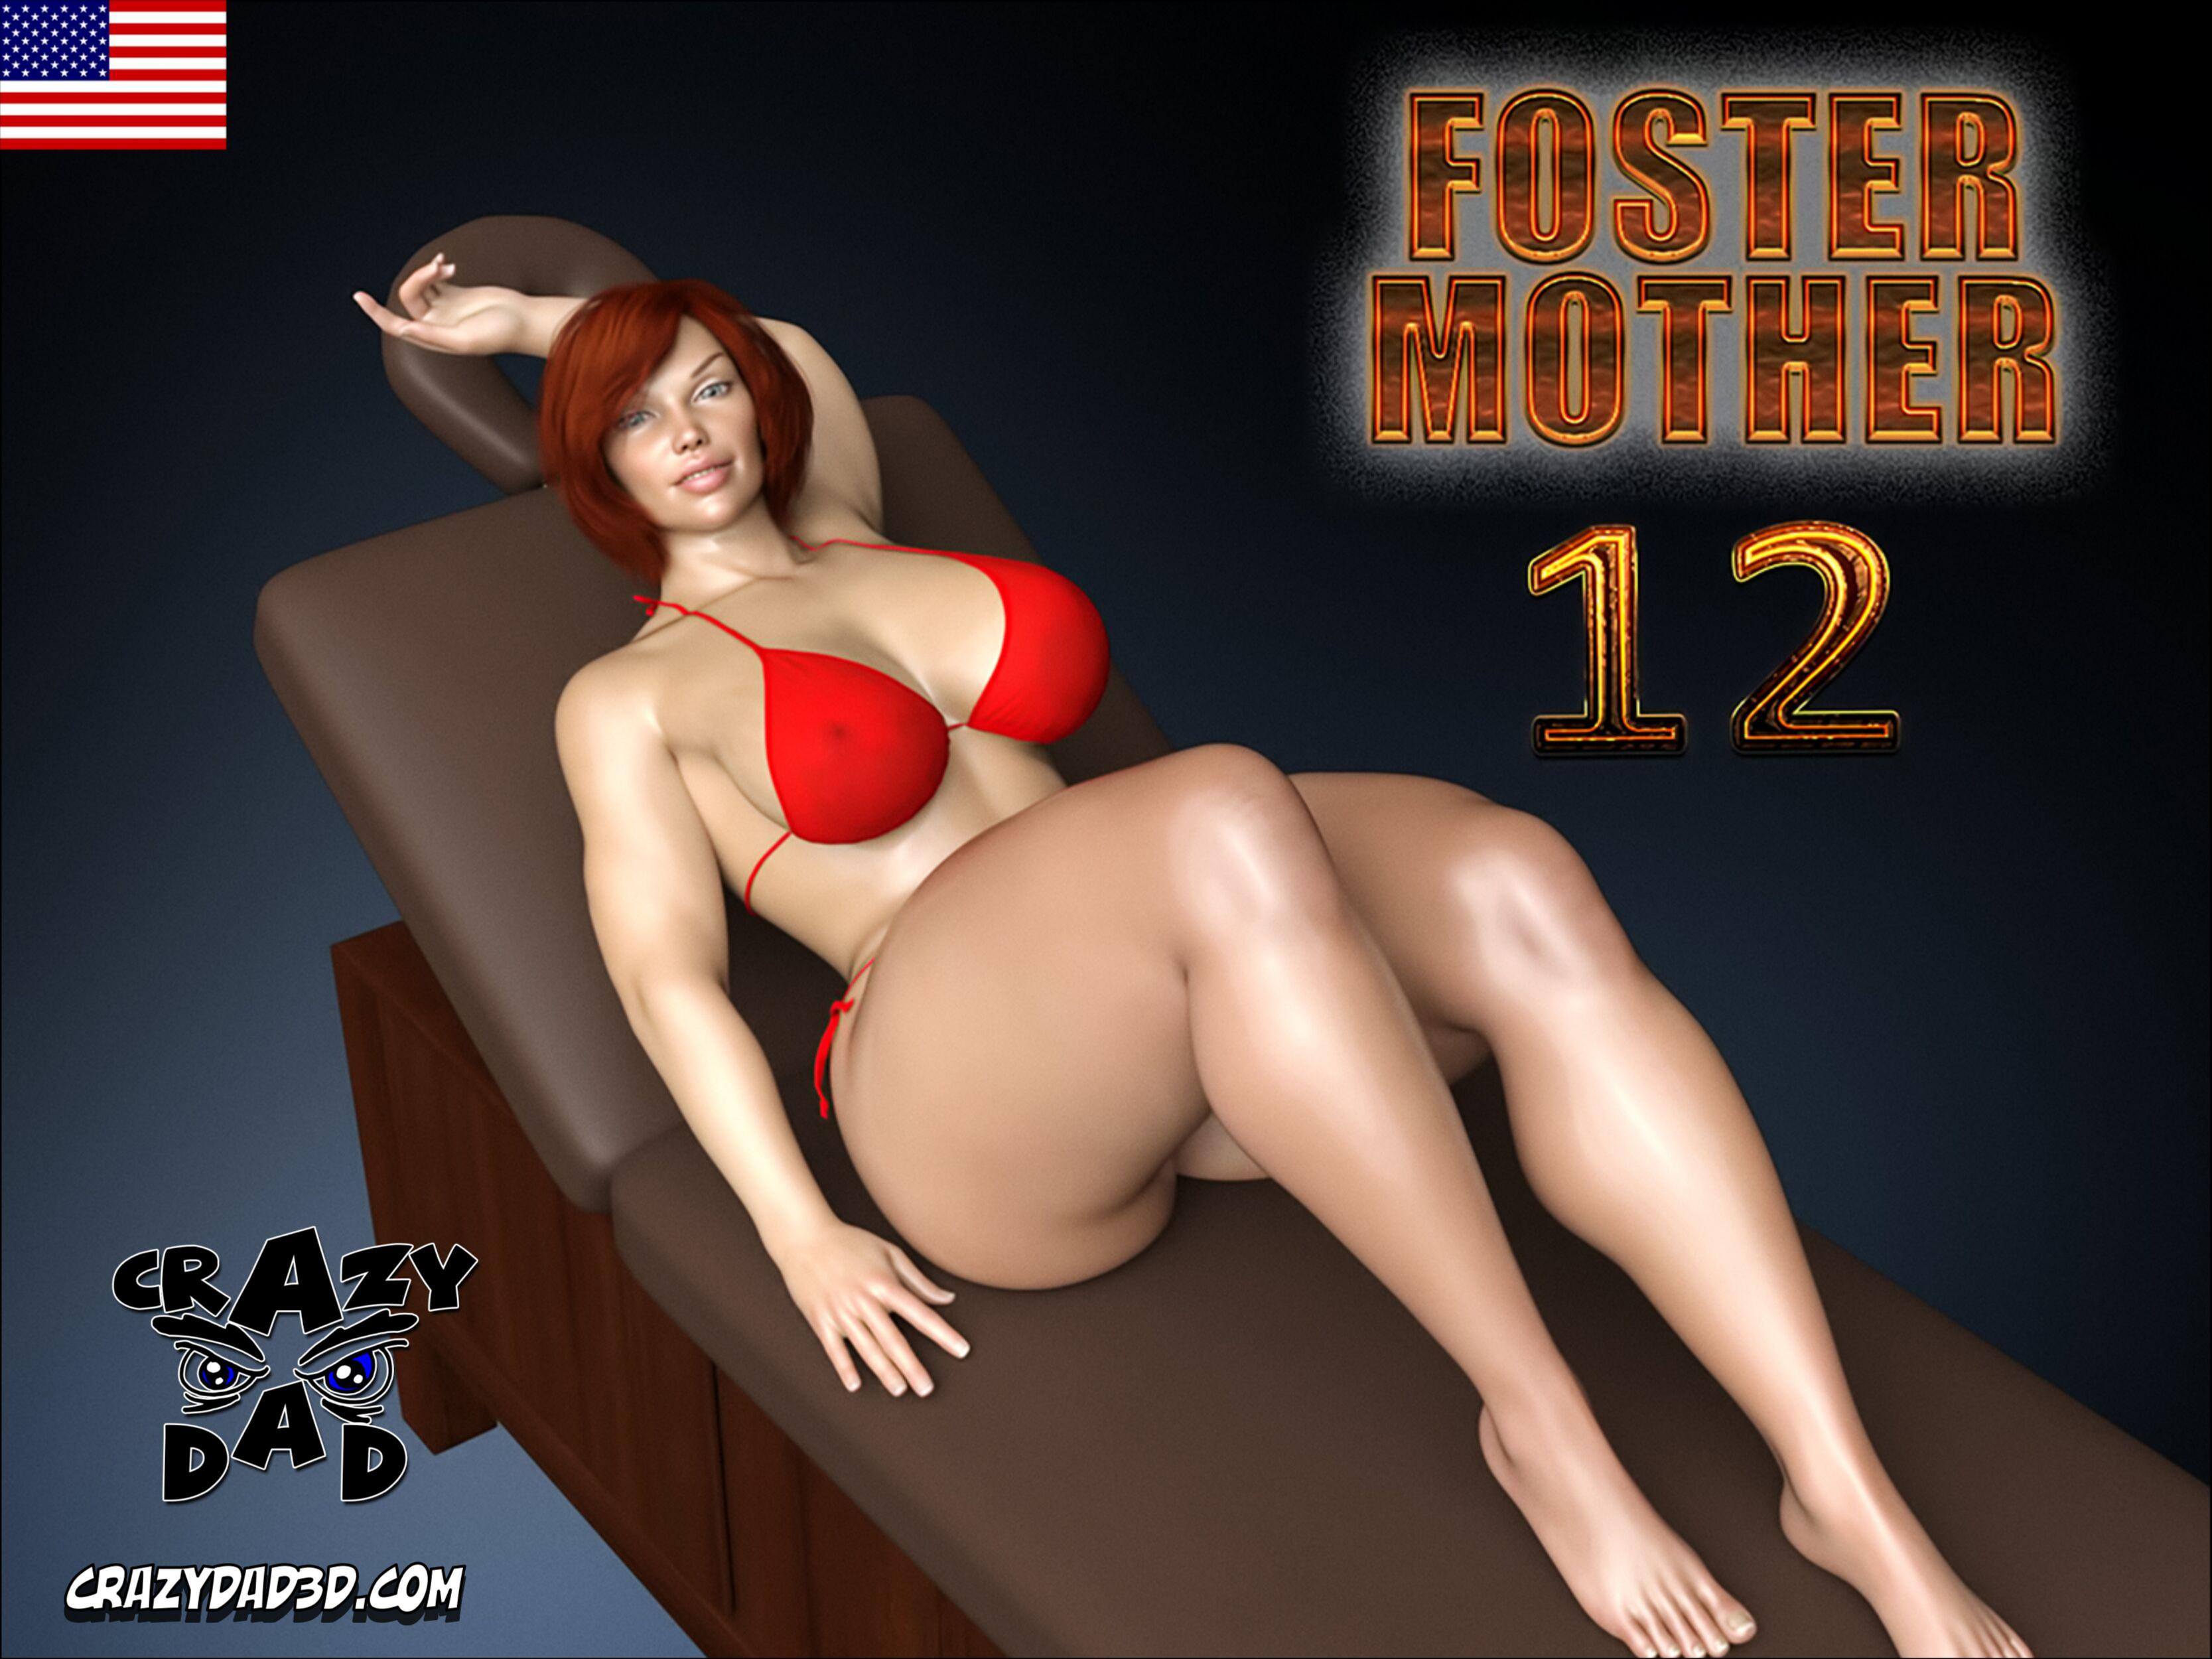 Crazy Dad – Foster Mother 12